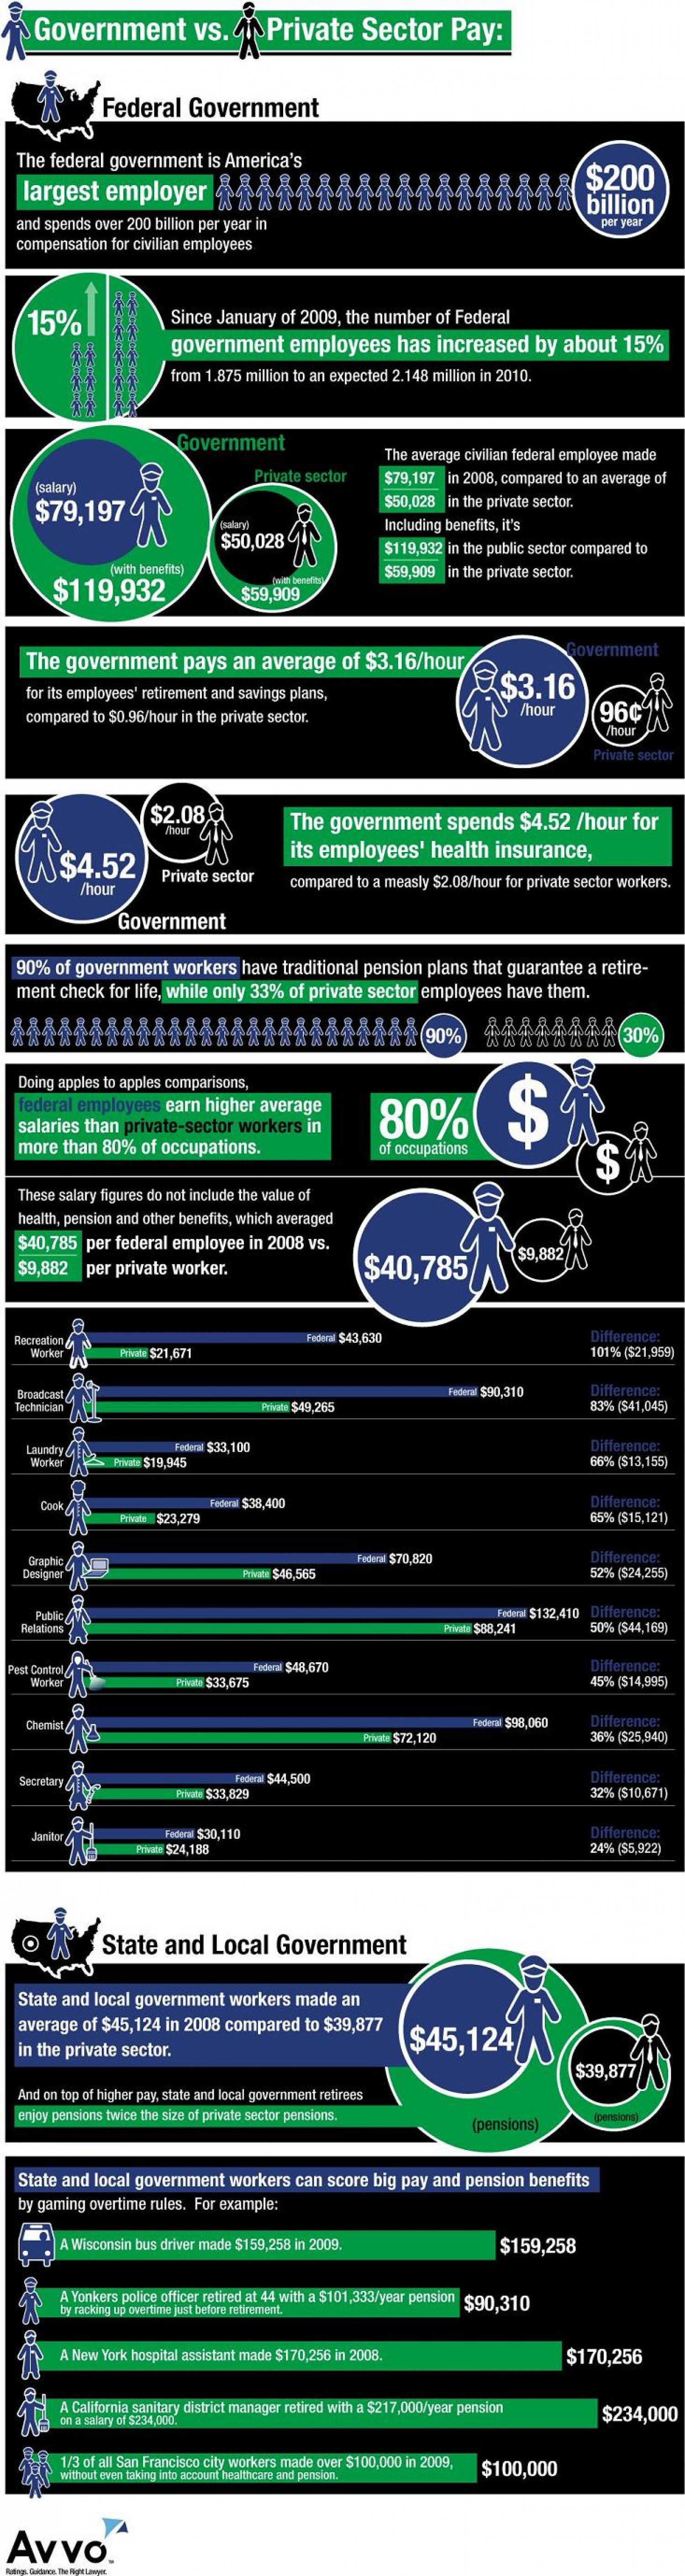 Government Vs. Private Sector Pay Infographic